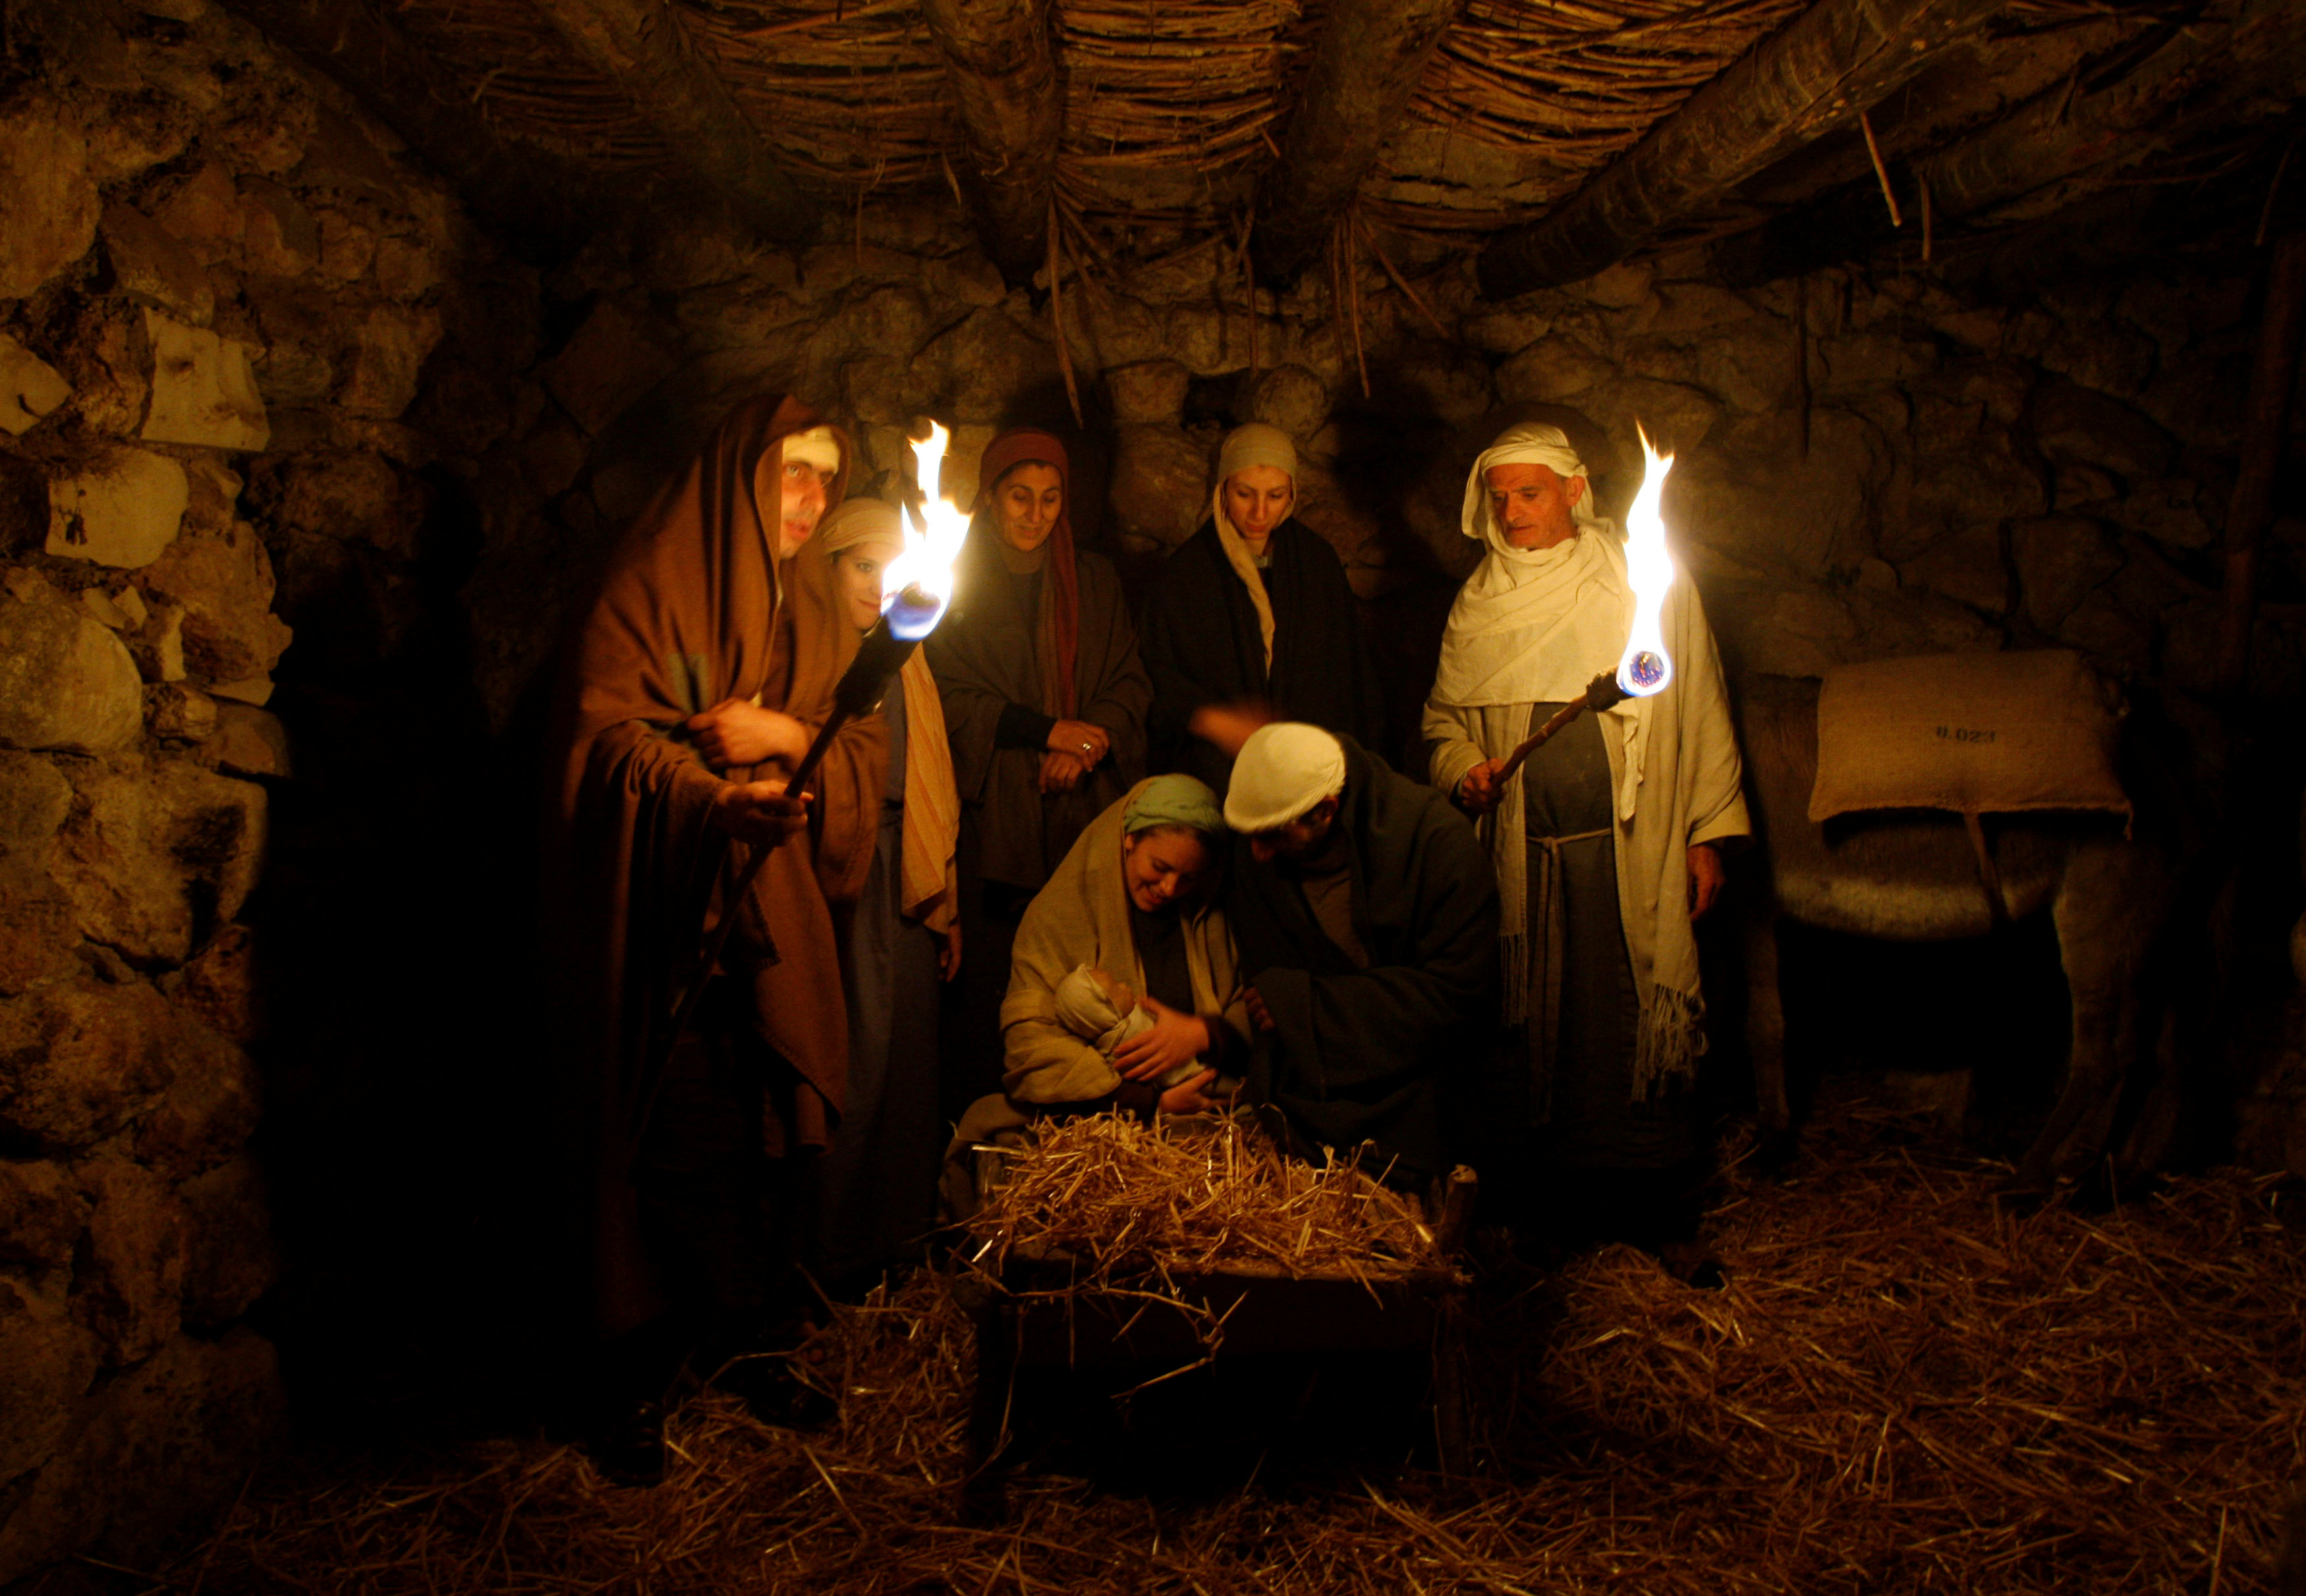 Israeli Arabs perform a nativity scene for tourists in the northern town of Nazareth December 22, 2008.